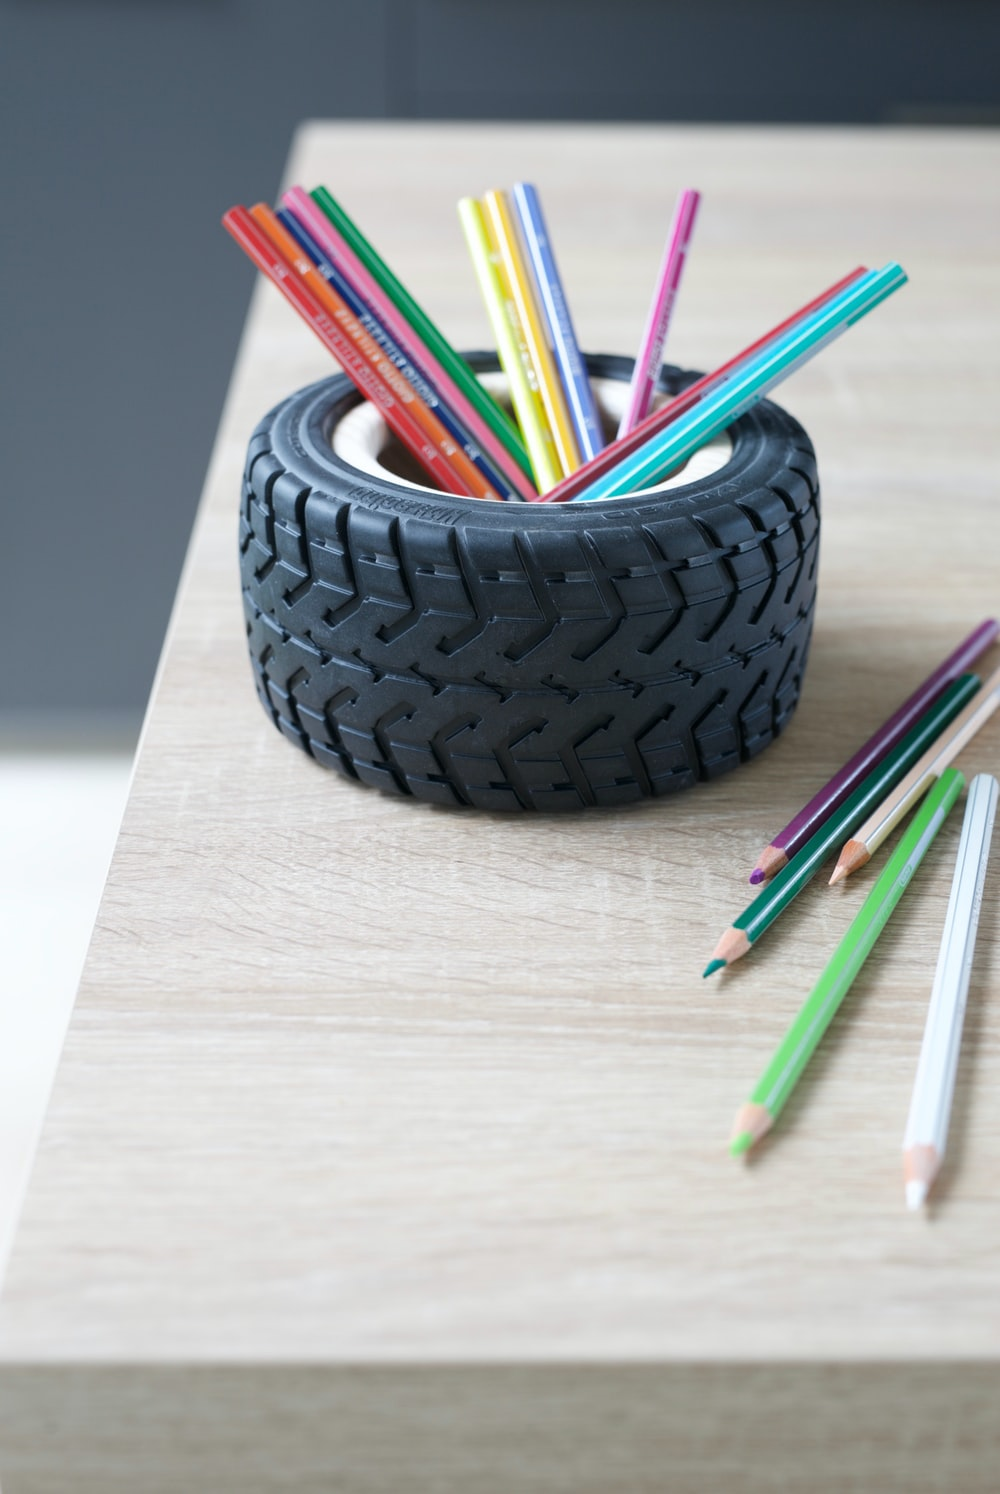 assorted color pencils on black round container